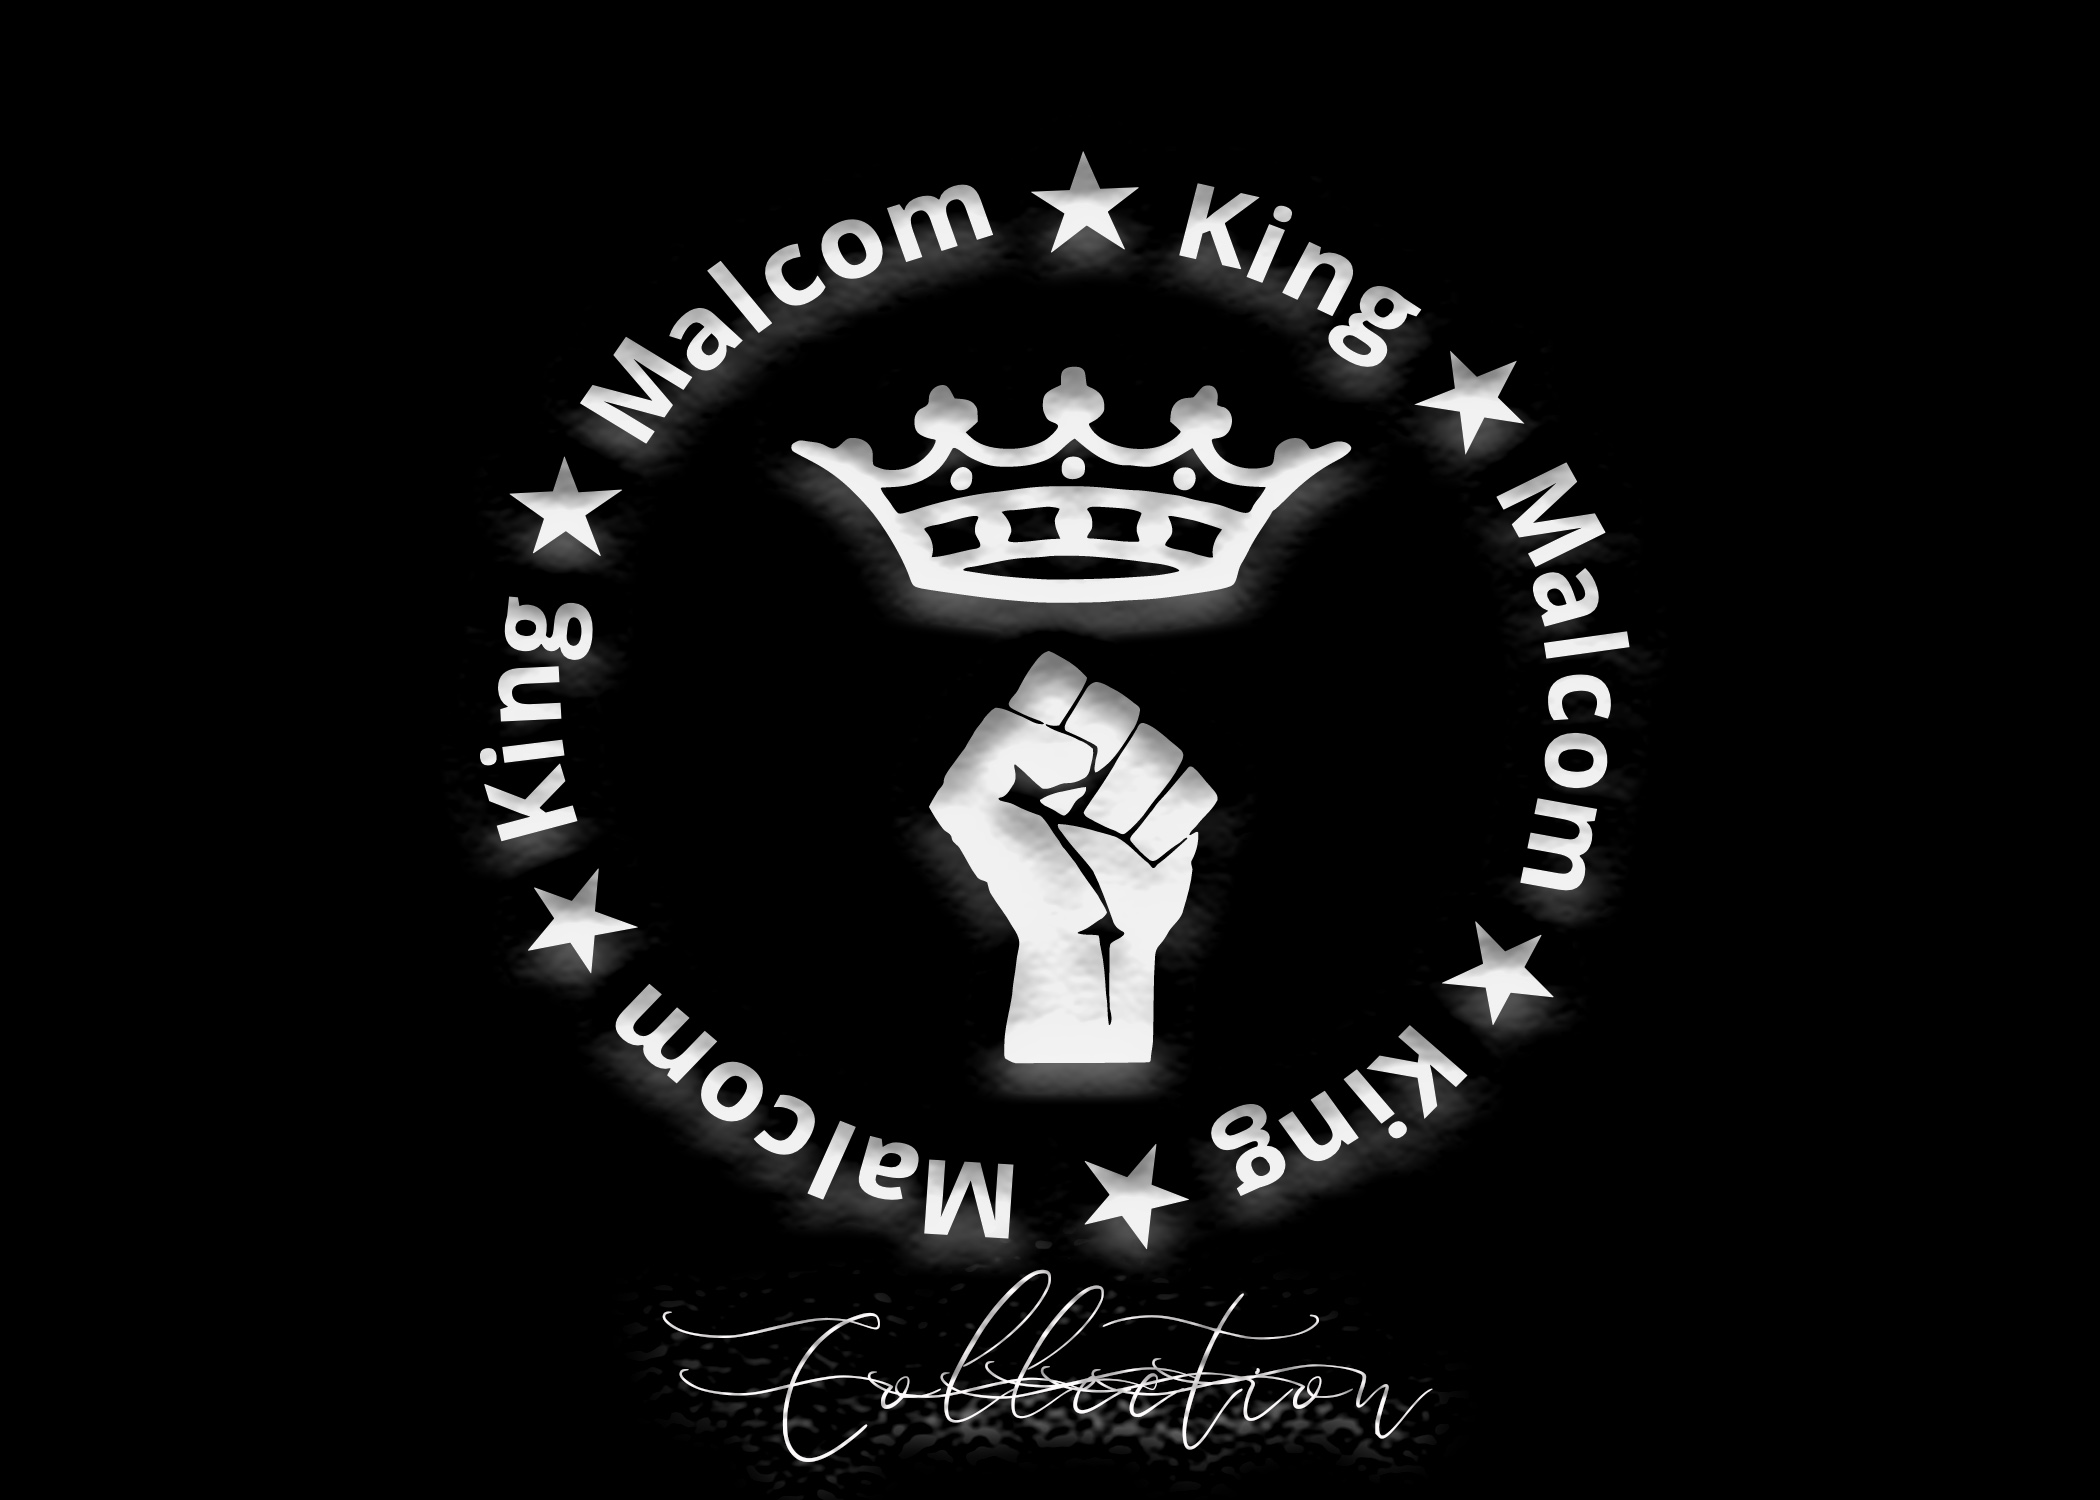 Malcom King Collection BANNER 1A